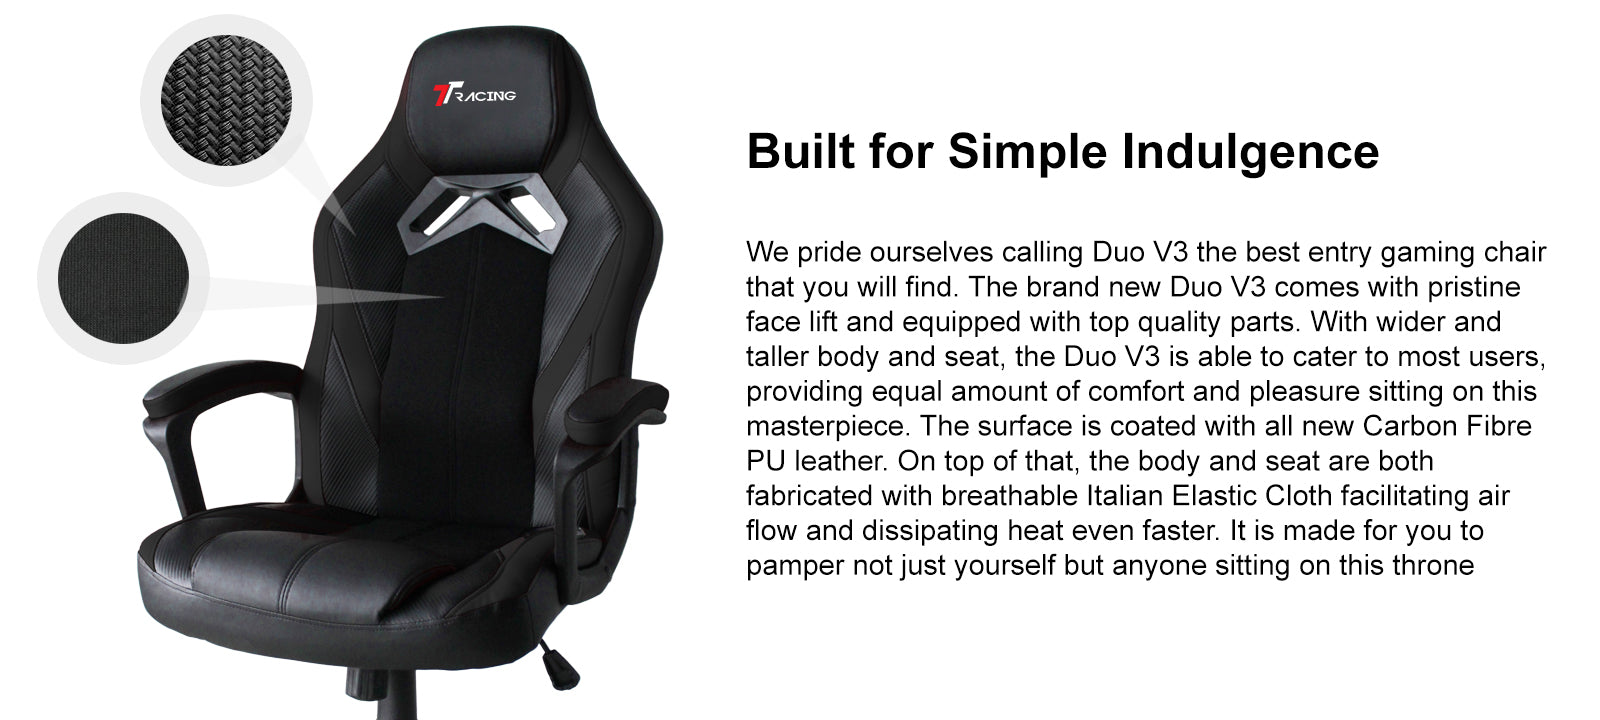 TTRACING DUO V3 PU LEATHER GAMING CHAIR simple indulgence